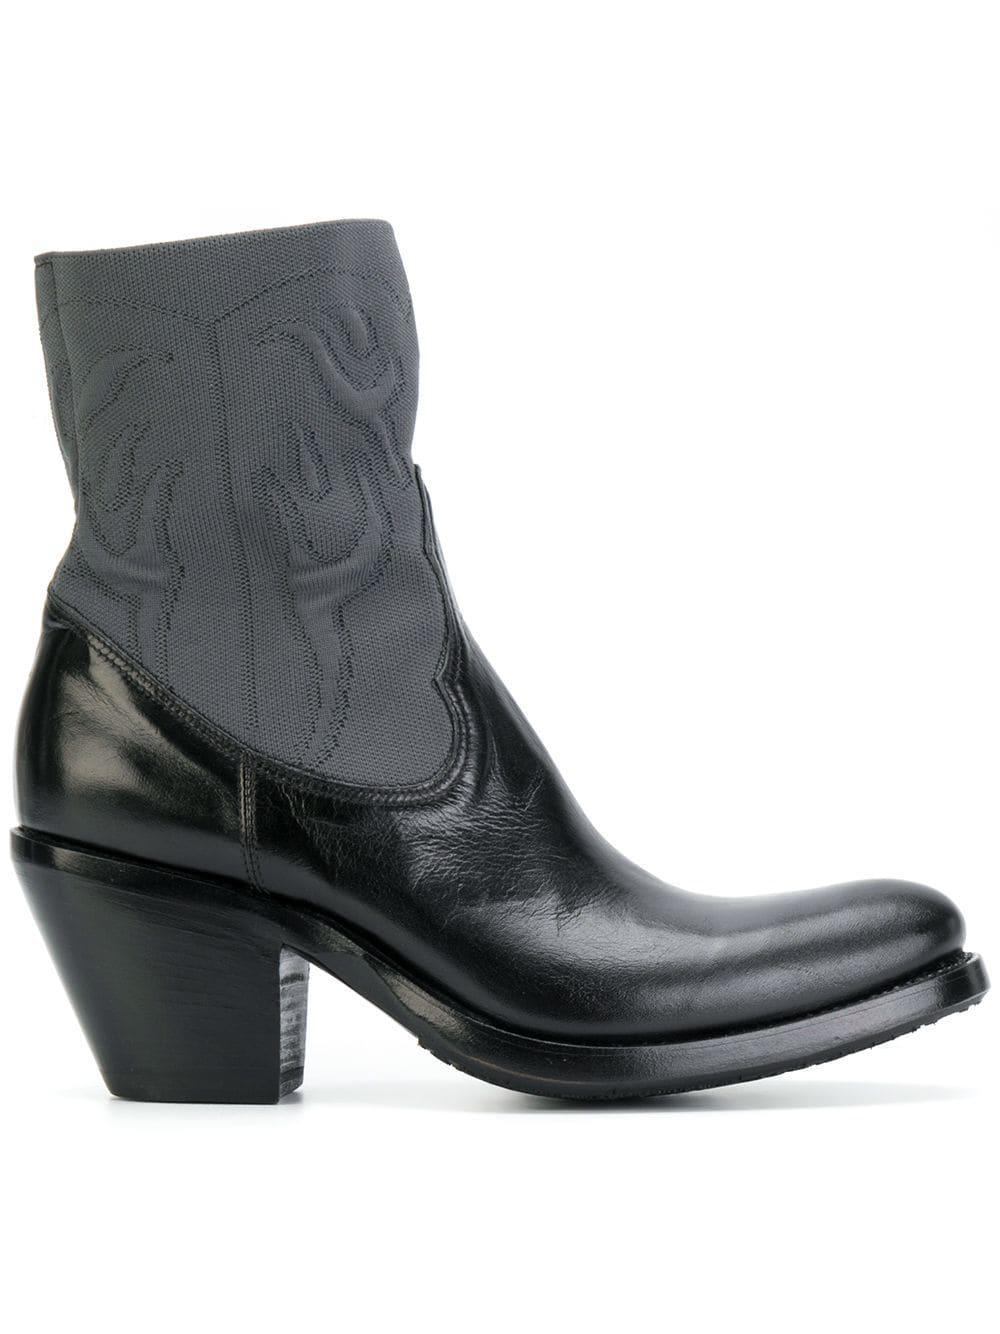 Rocco P Leather Cowboy Style Boots in Black